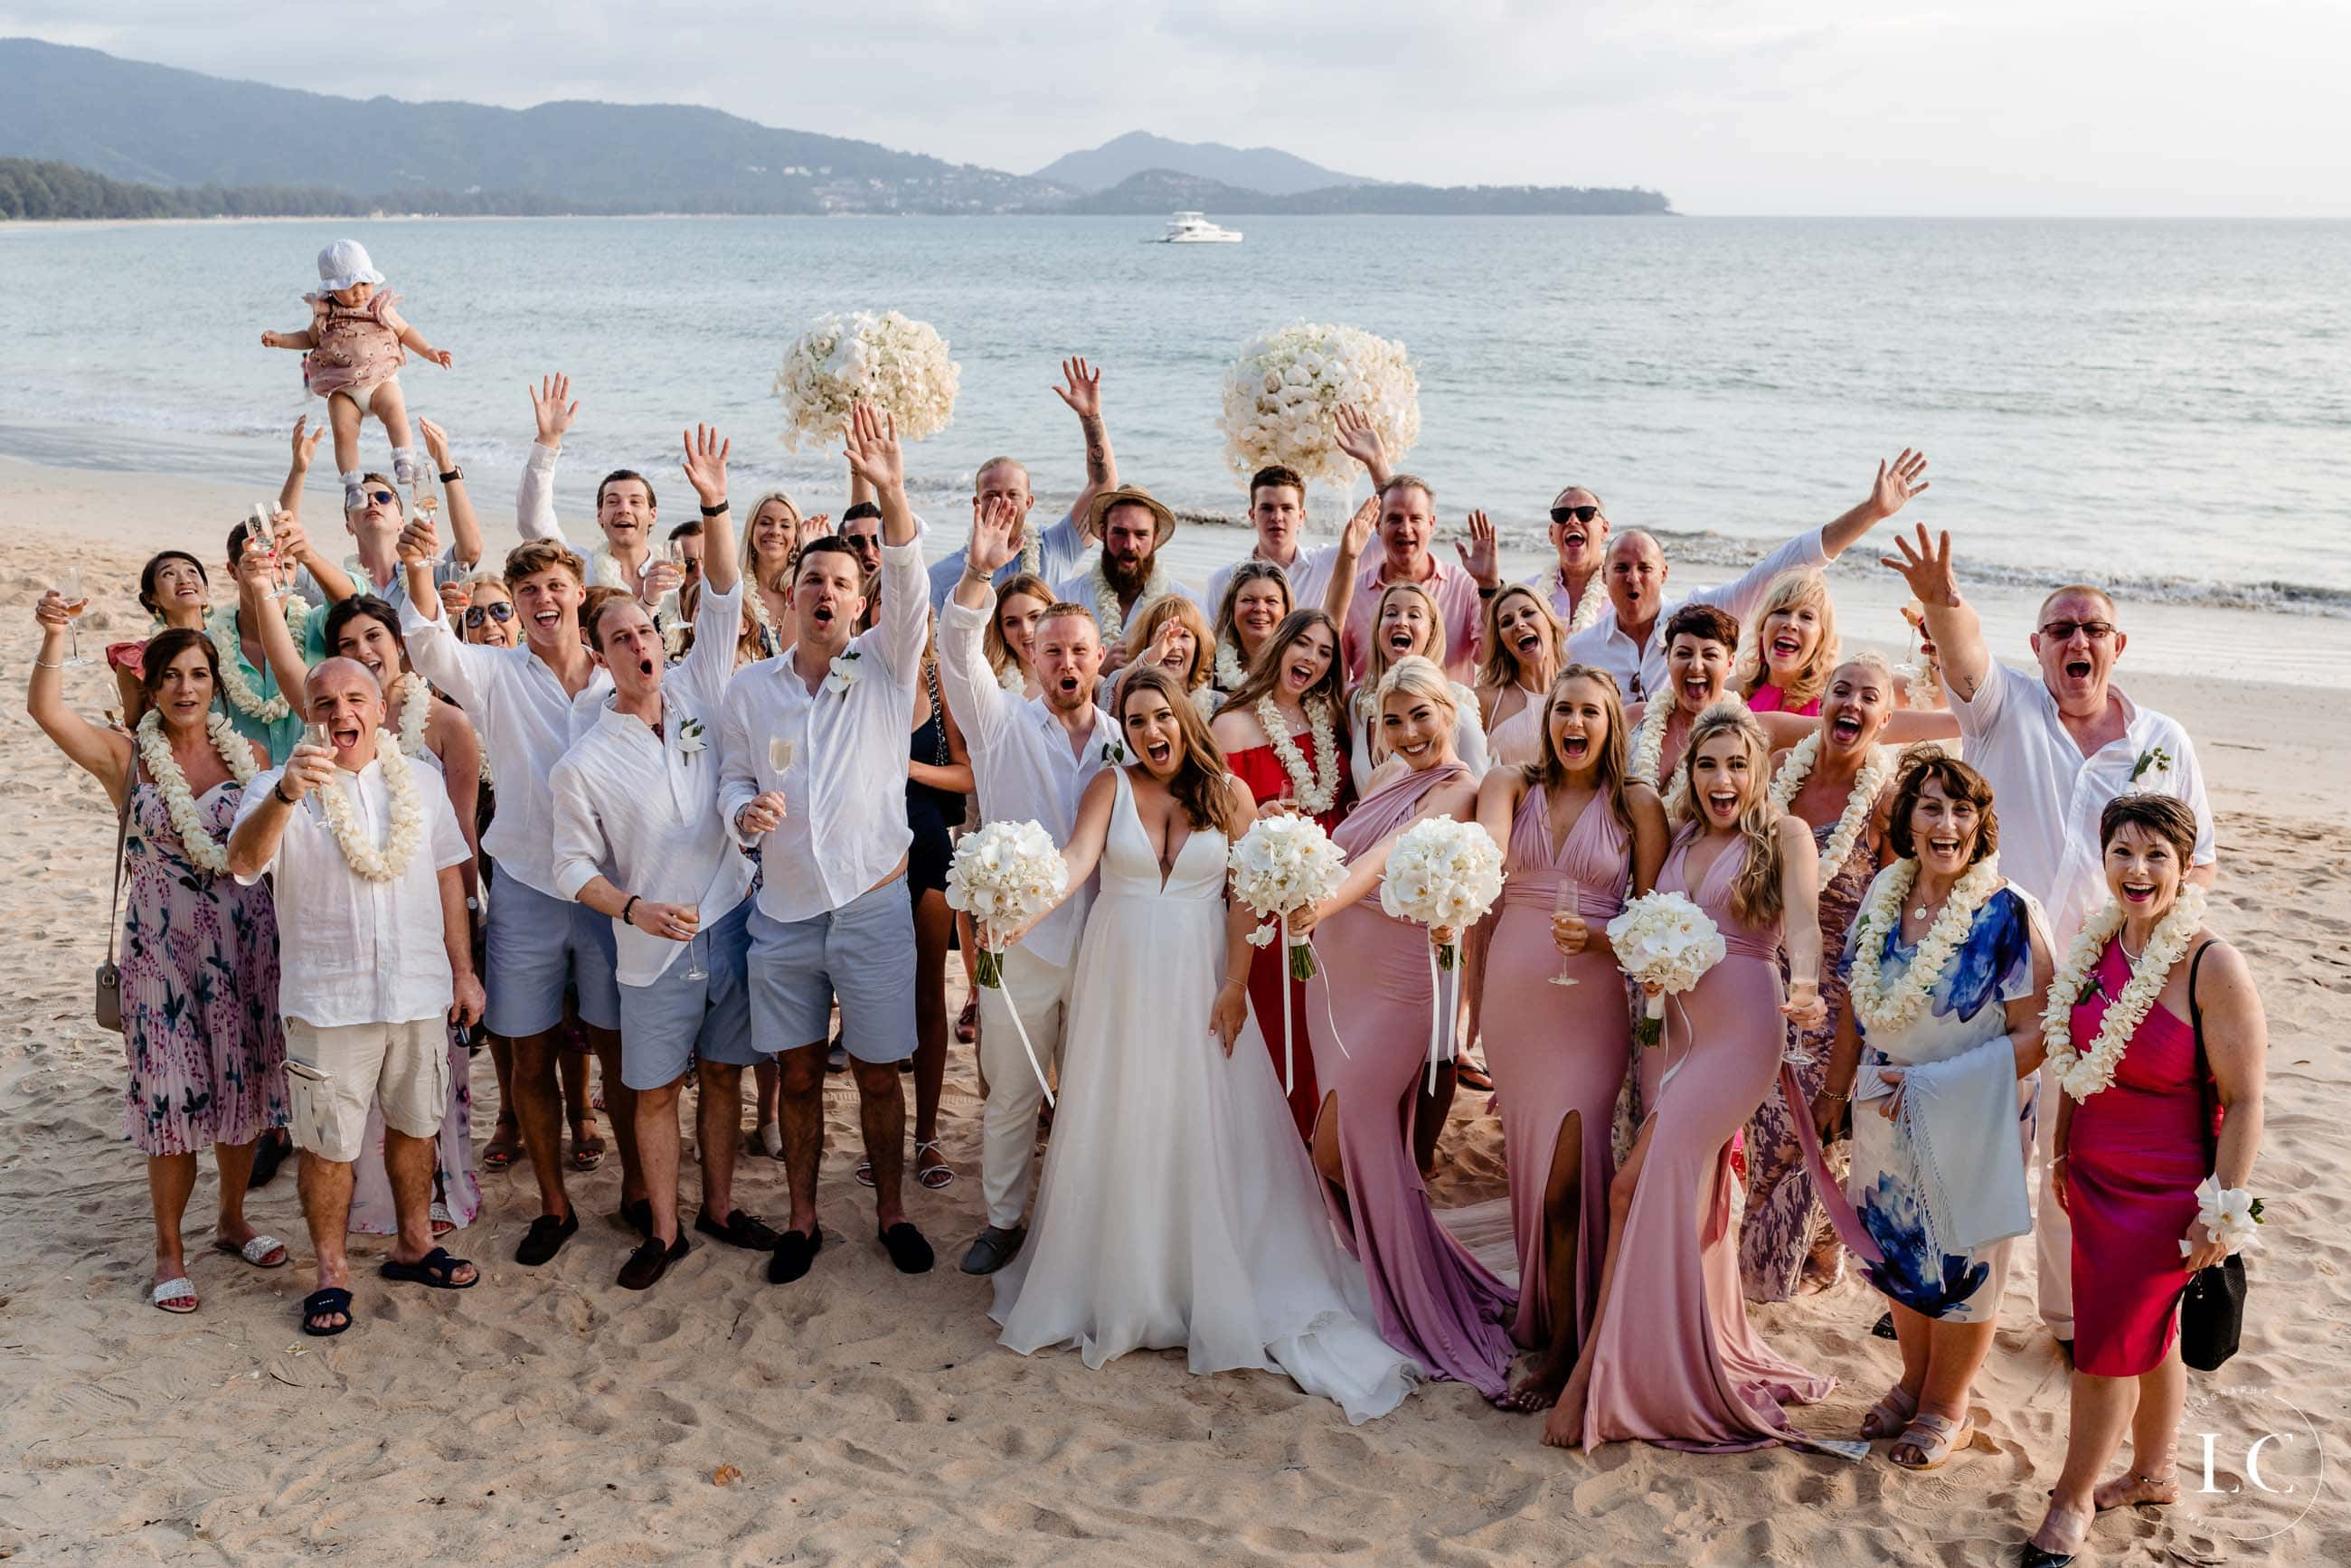 wedding party group photo on beach